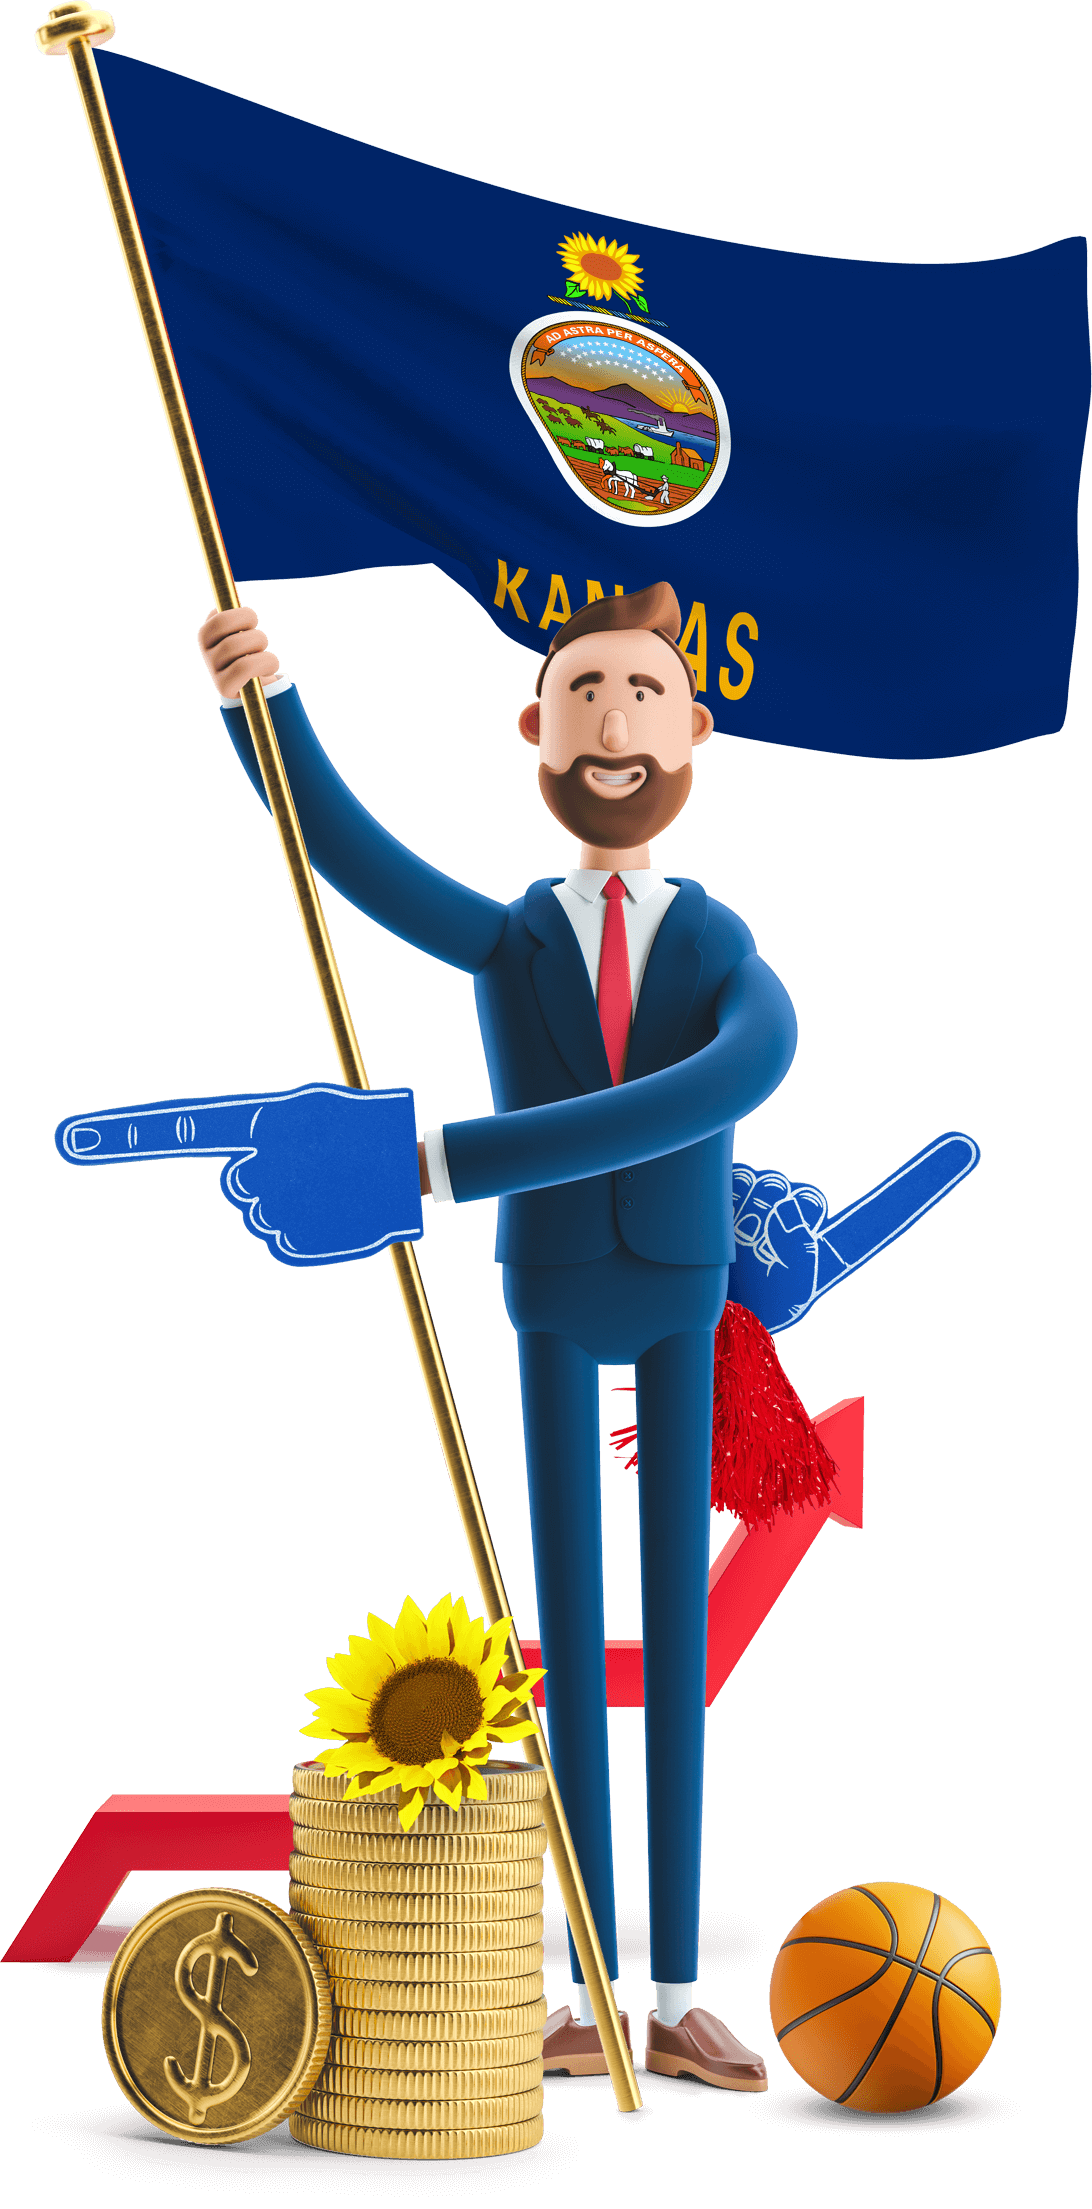 Kansas flag held by MetCredit USA businessman who's wearing a we're number 1 foam finger with a basketball at his feet and a sunflower on an oversized stack of coins